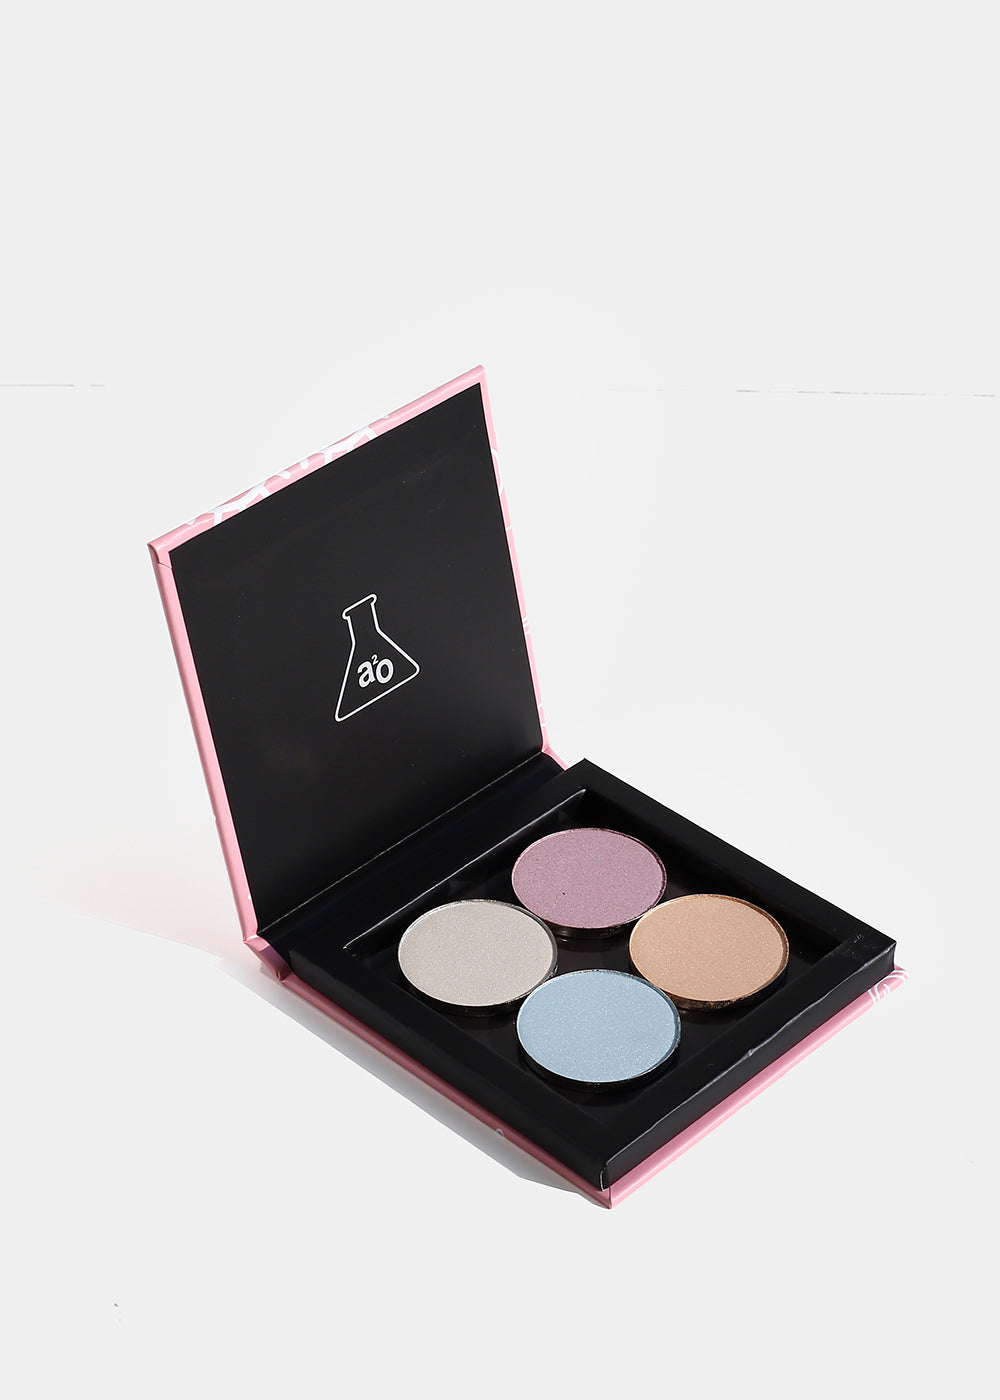 a2o Lab Empty Magnetic Palette - Small Beauty Tools